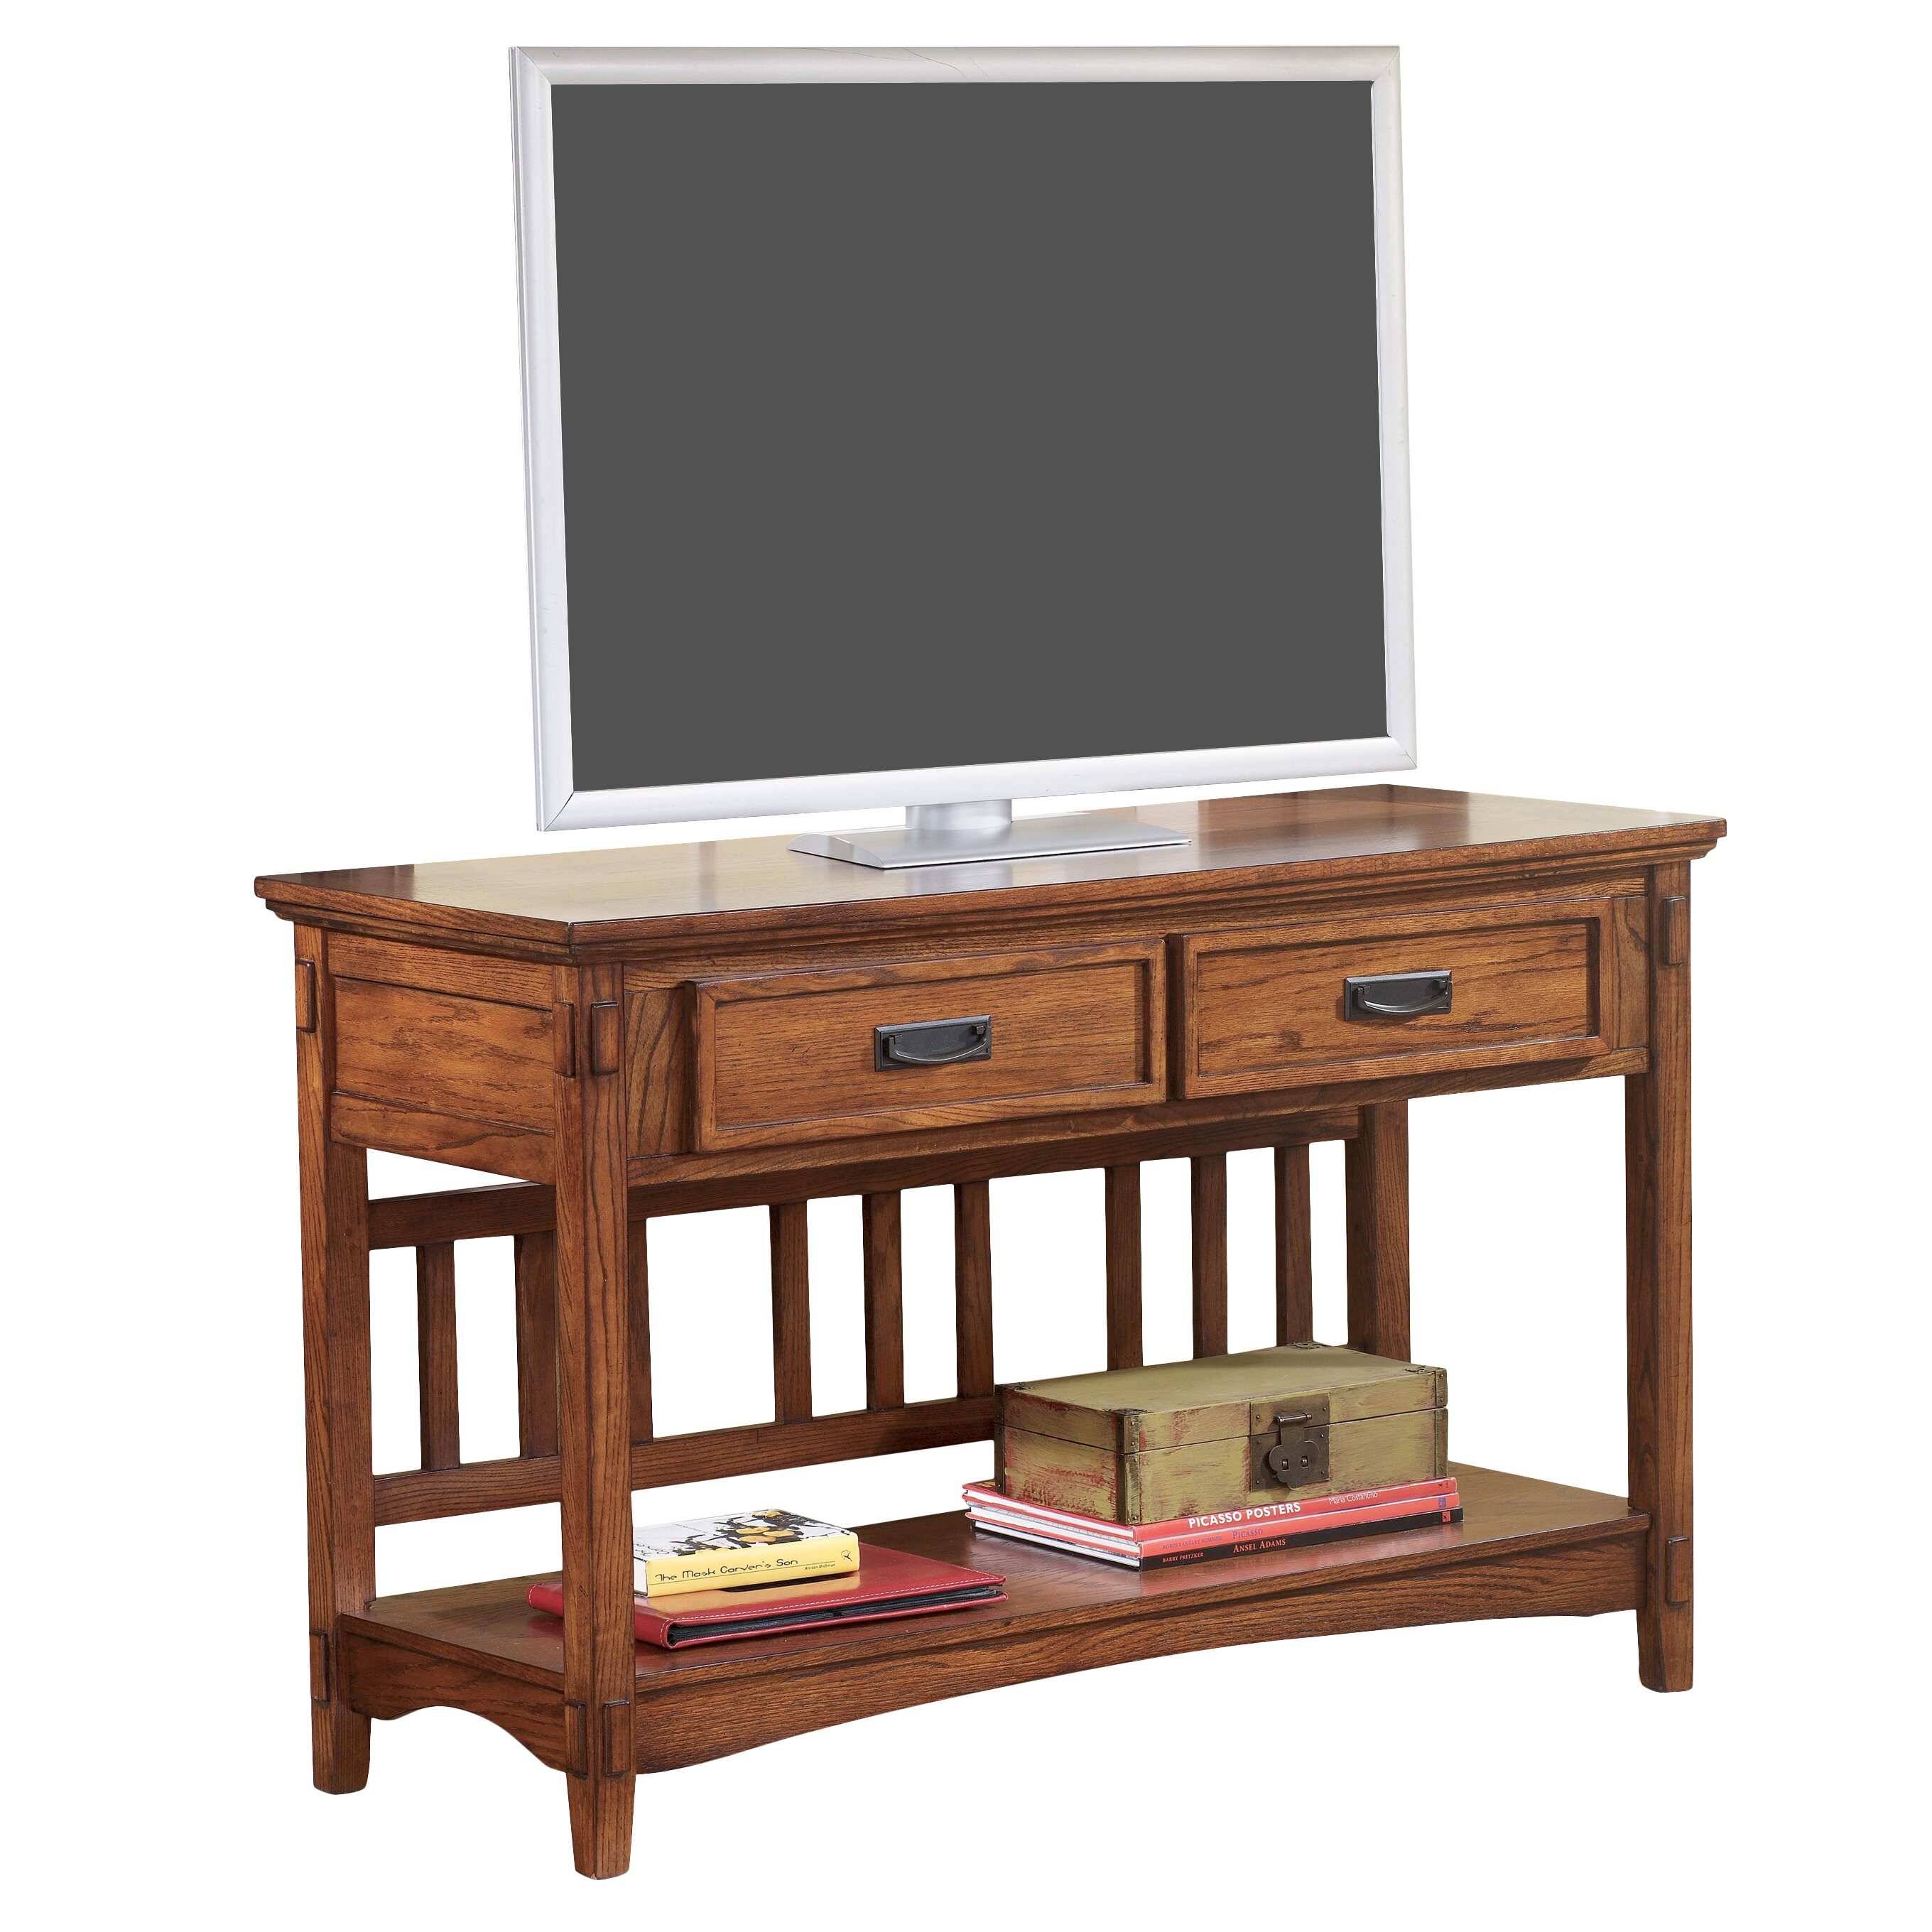 Loon peak barrett tv stand reviews wayfair Peak office furniture